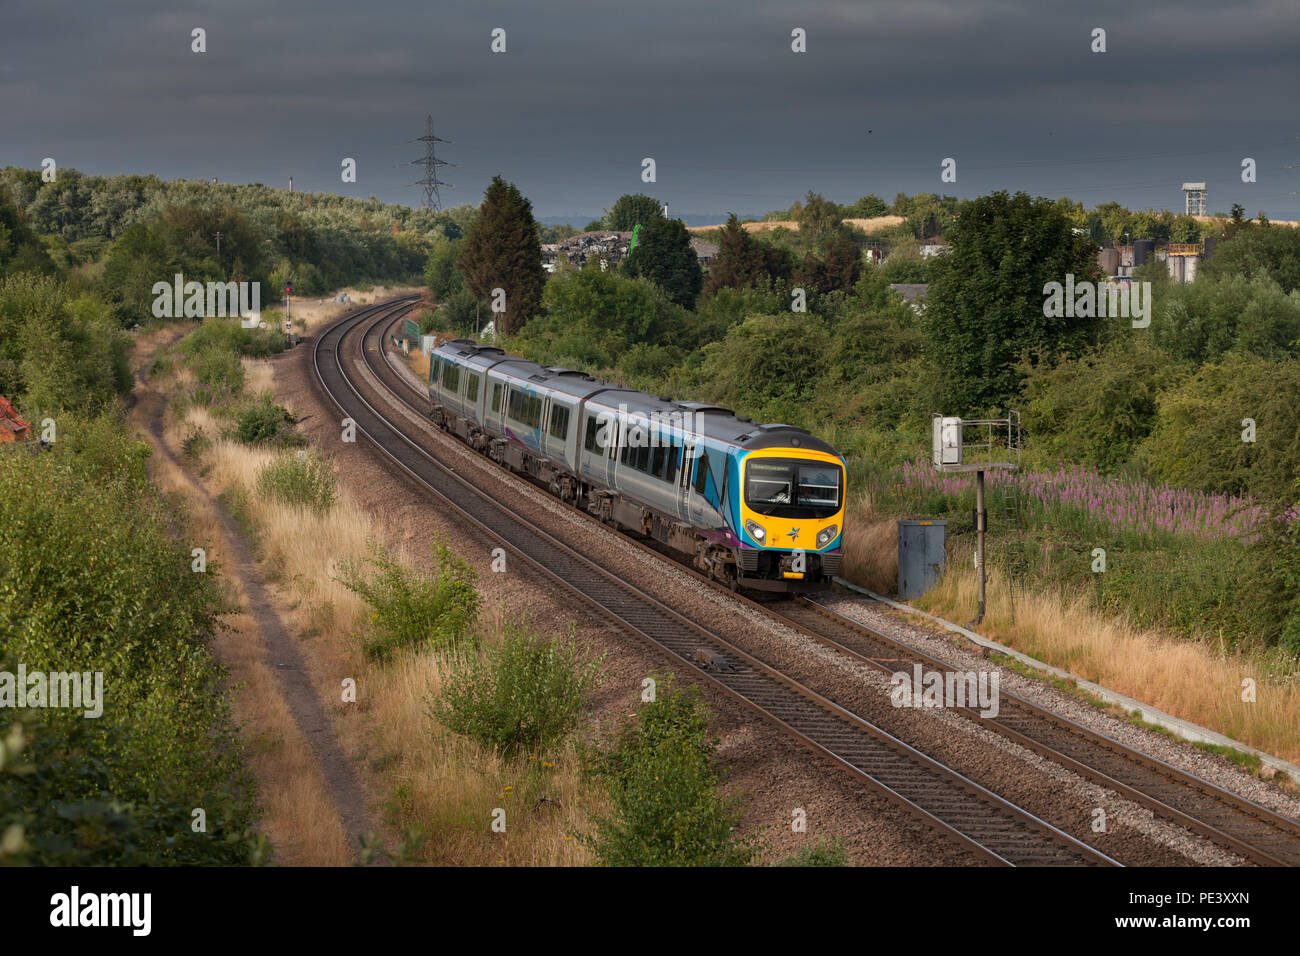 A First Transpennine express class 185 disel train passing Kilnhurst (south of Swinton, Yorkshire) with a  Manchester Airport to Cleethorpes service - Stock Image